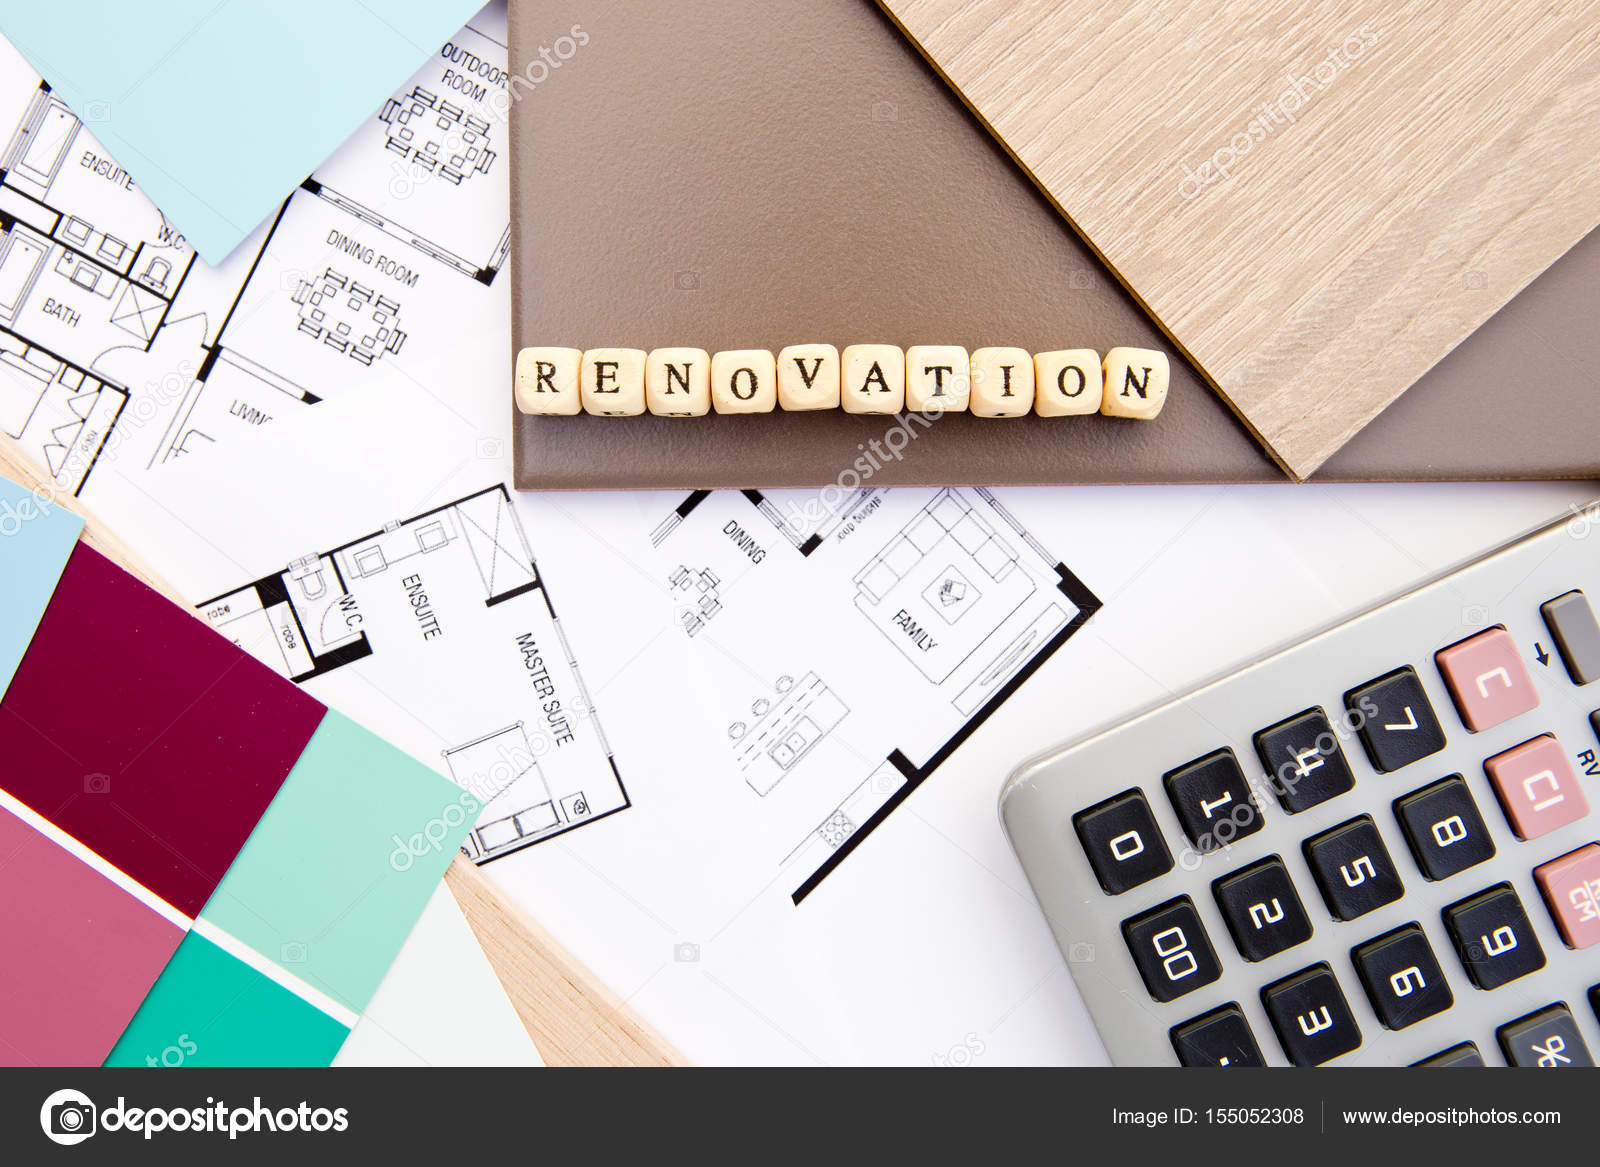 renovation in block letters with house drawings samples and